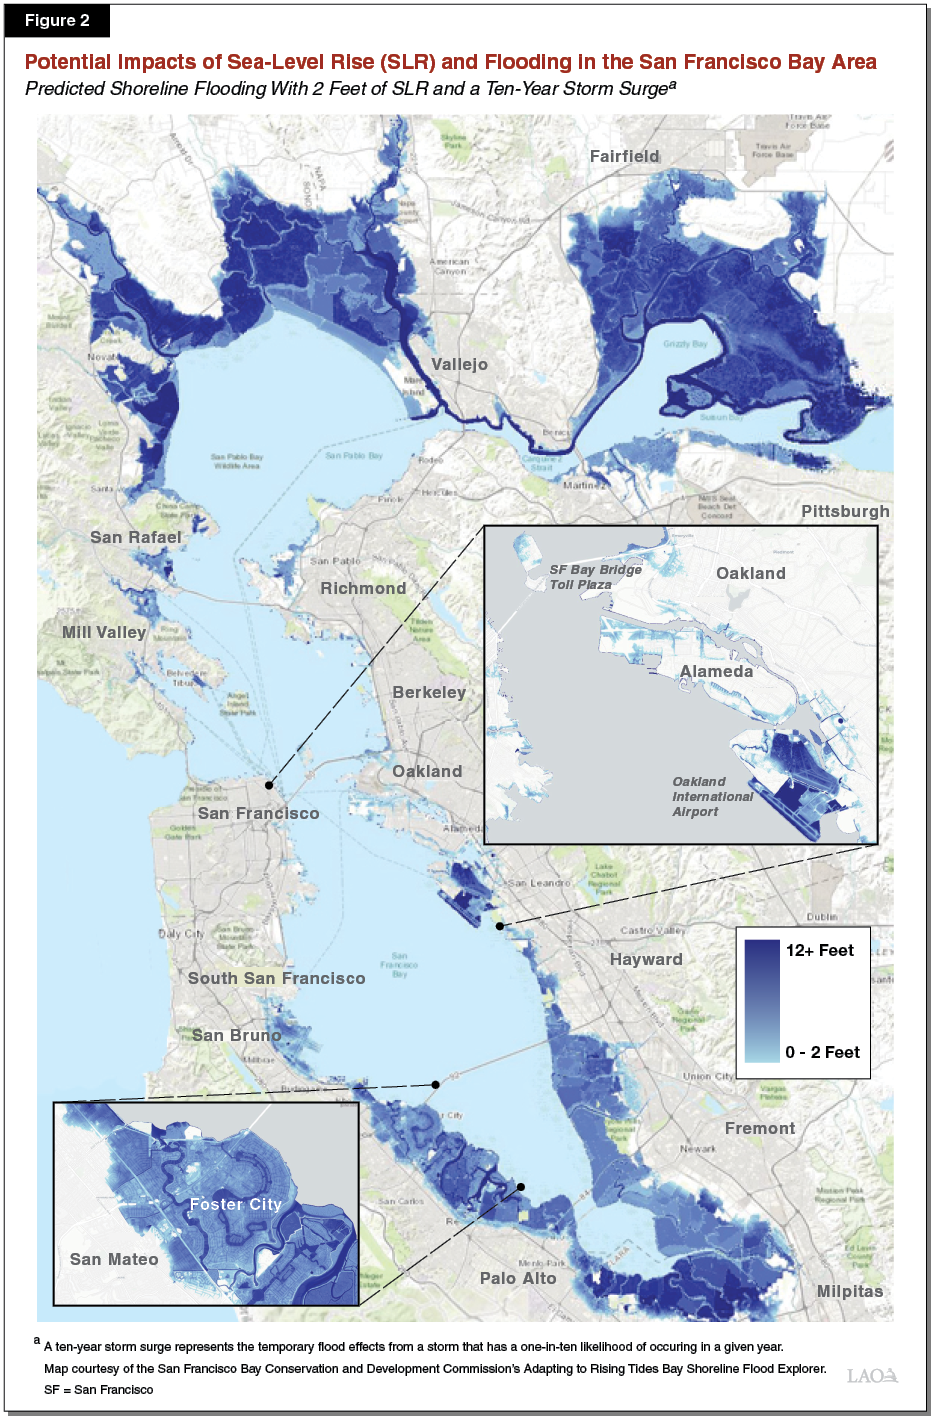 Figure 2 - Potential Impacts of Flooding and Sea-Level Rise in the San Francisco Bay Area